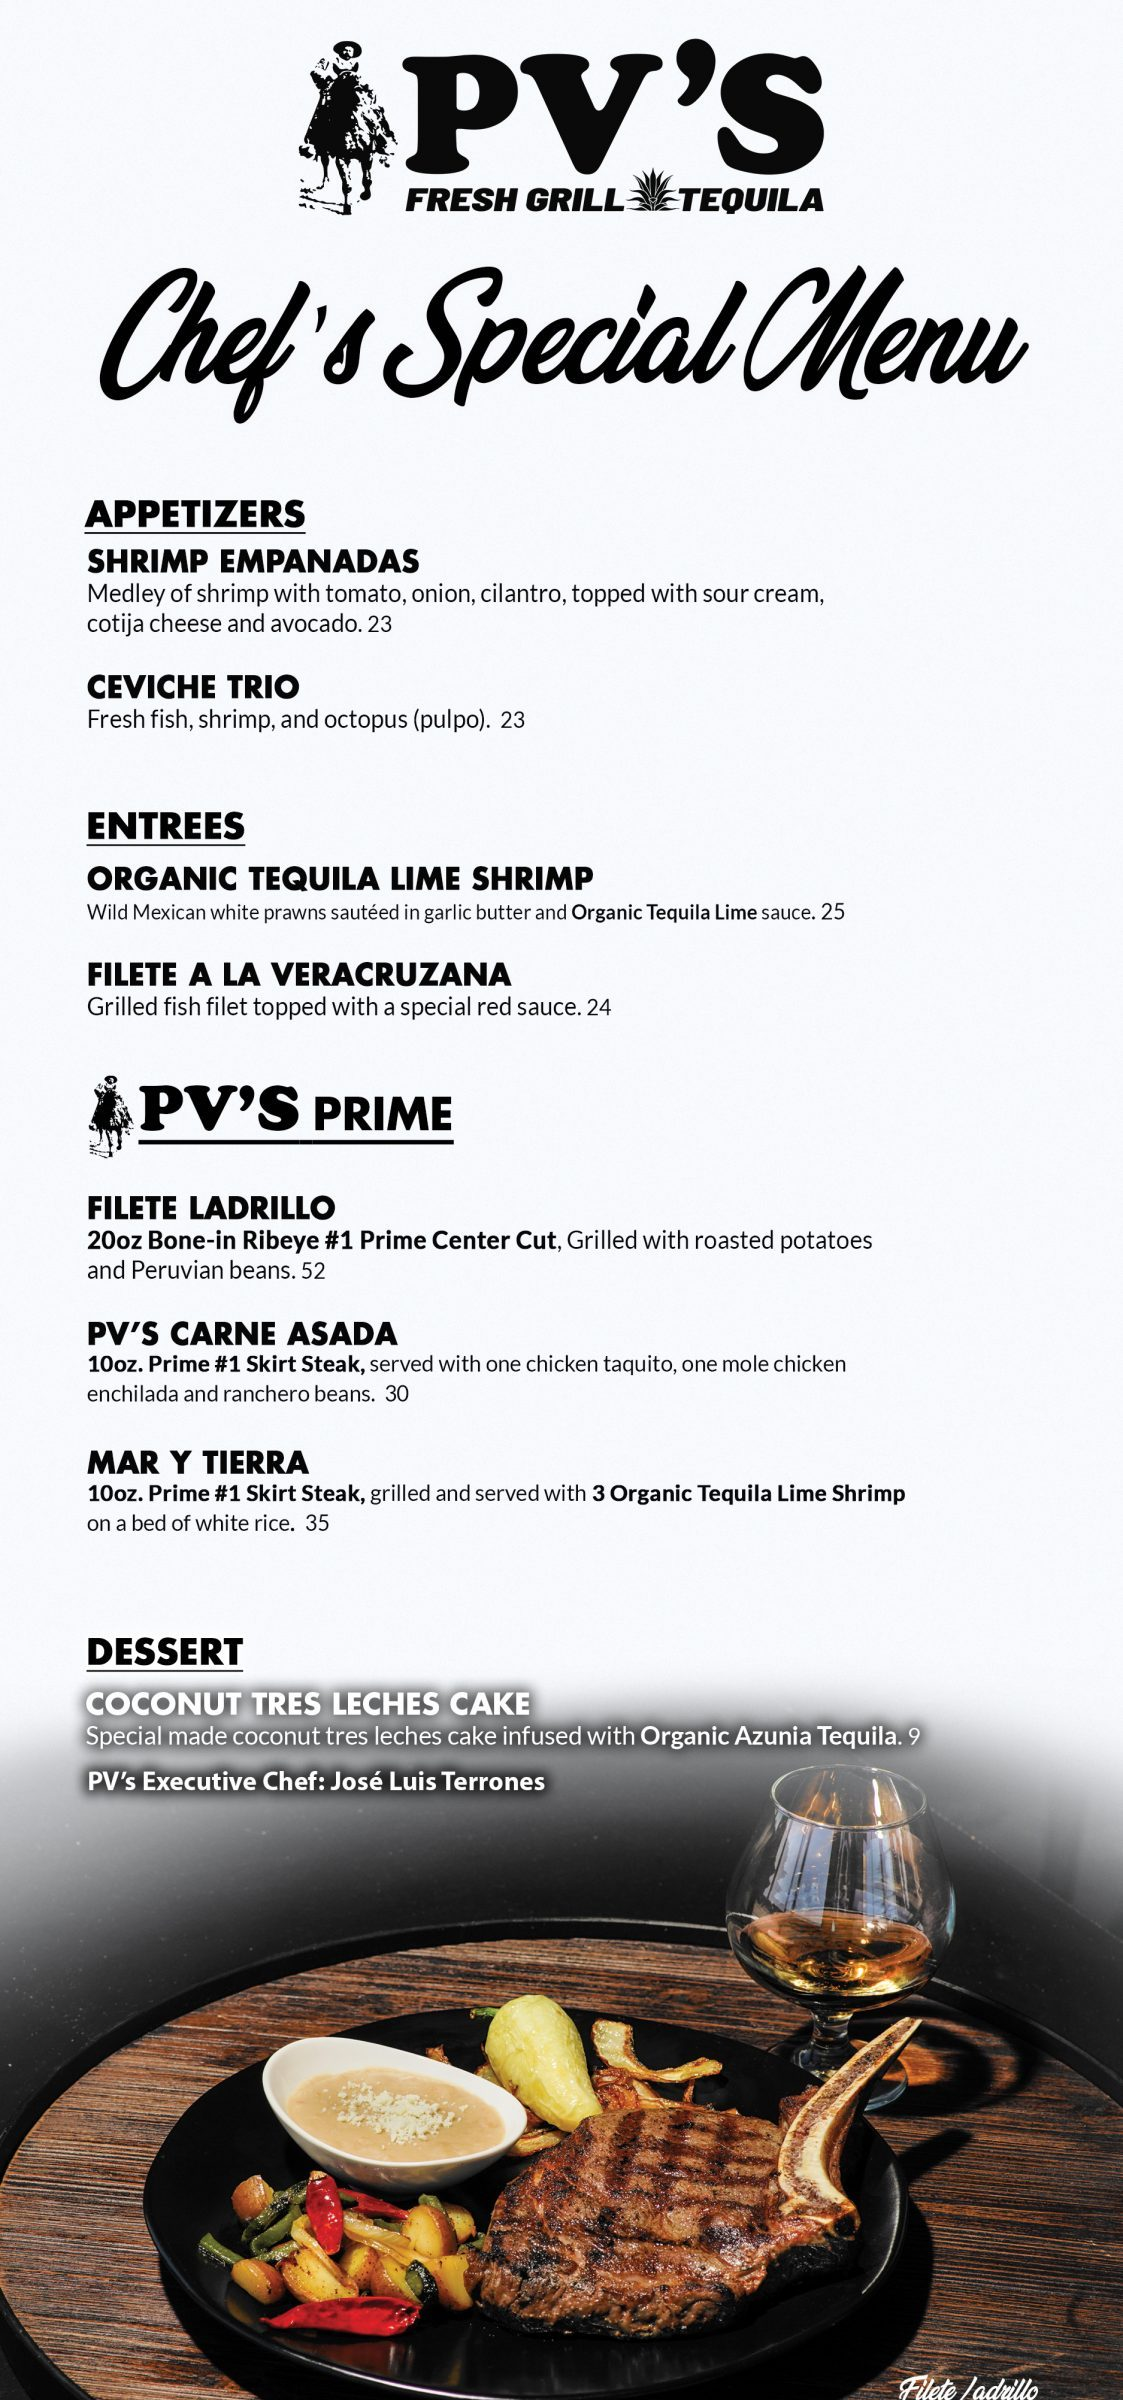 1 PVS Chefs Special Menu Front RGB 2-13-2020